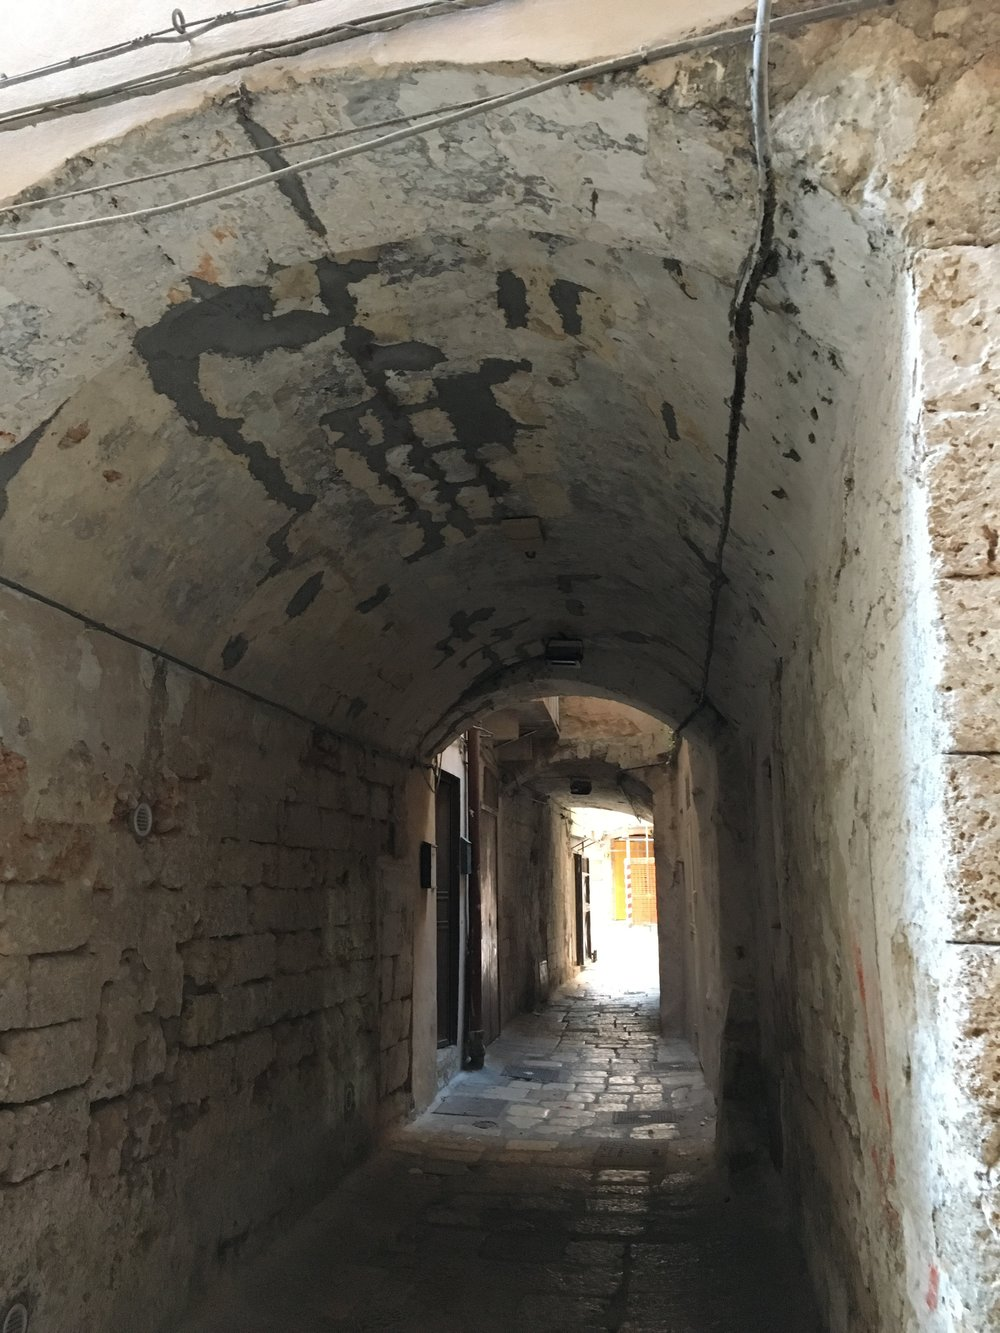 Exploring Random Medieval Passageways